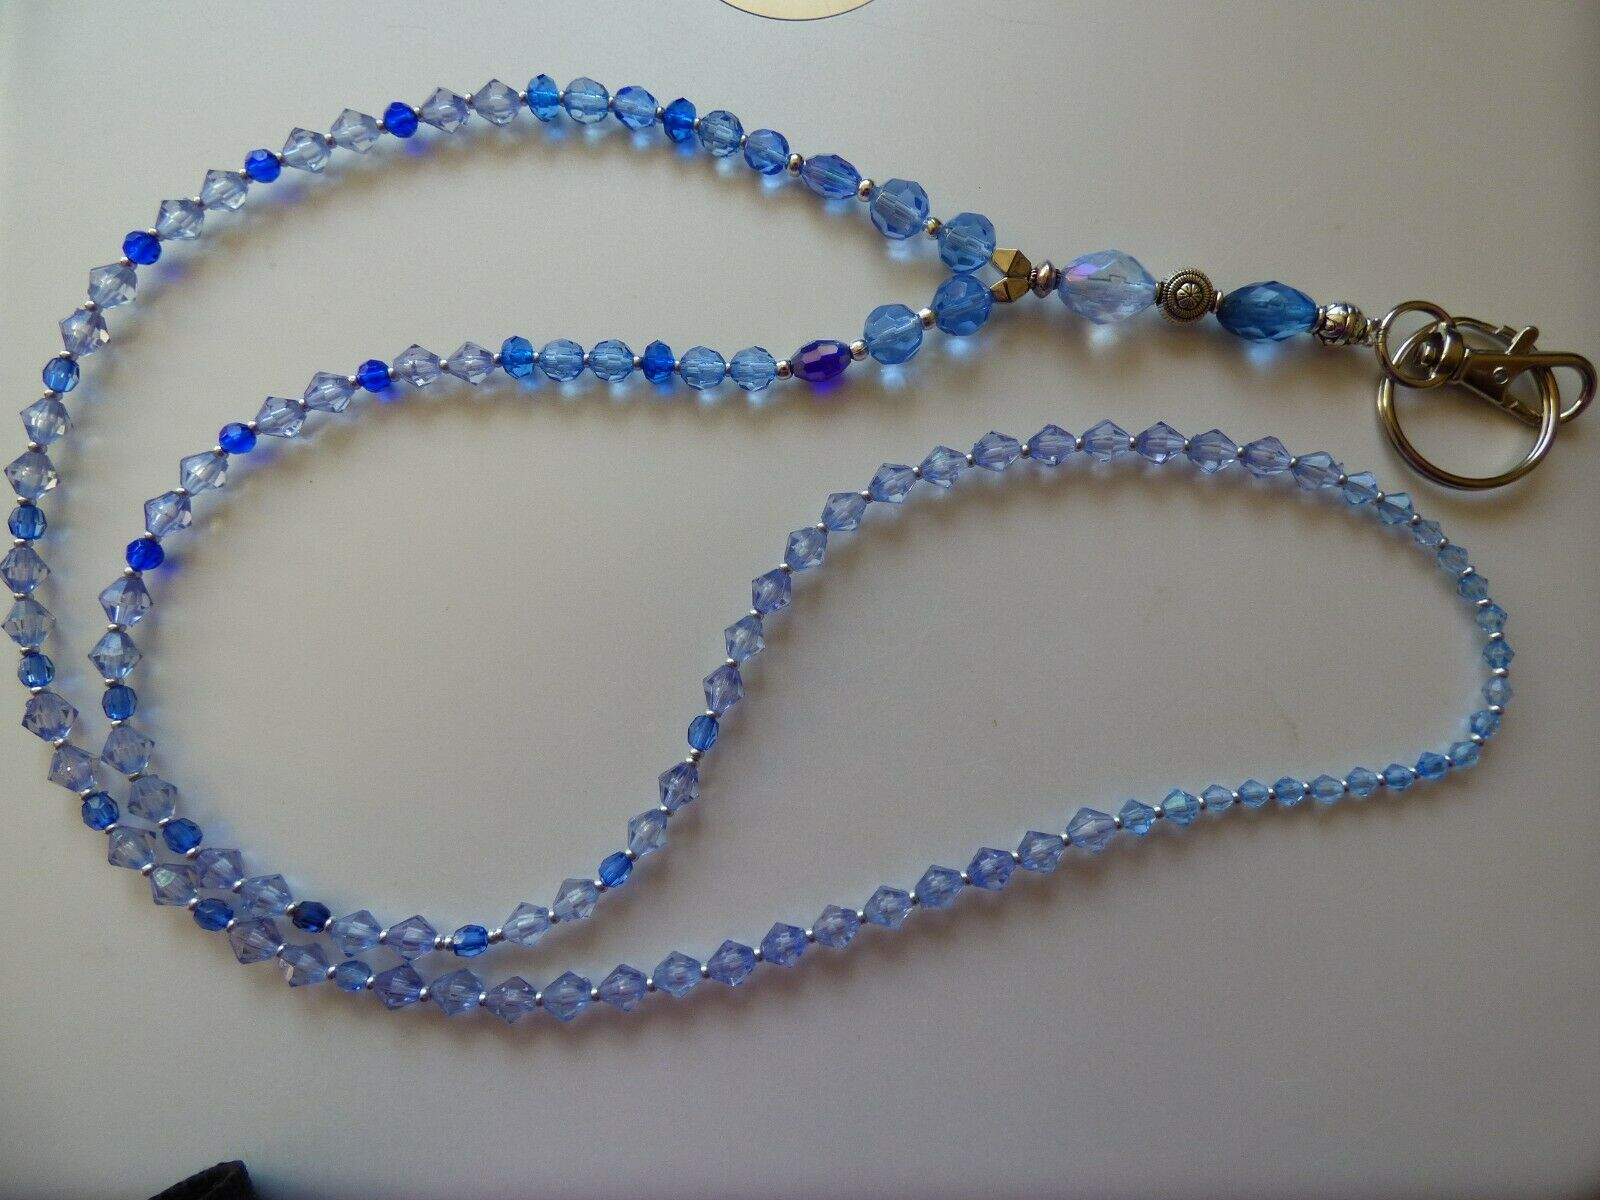 Beaded Lanyard. Blue Faux Crystals & Silver Colour Beads.